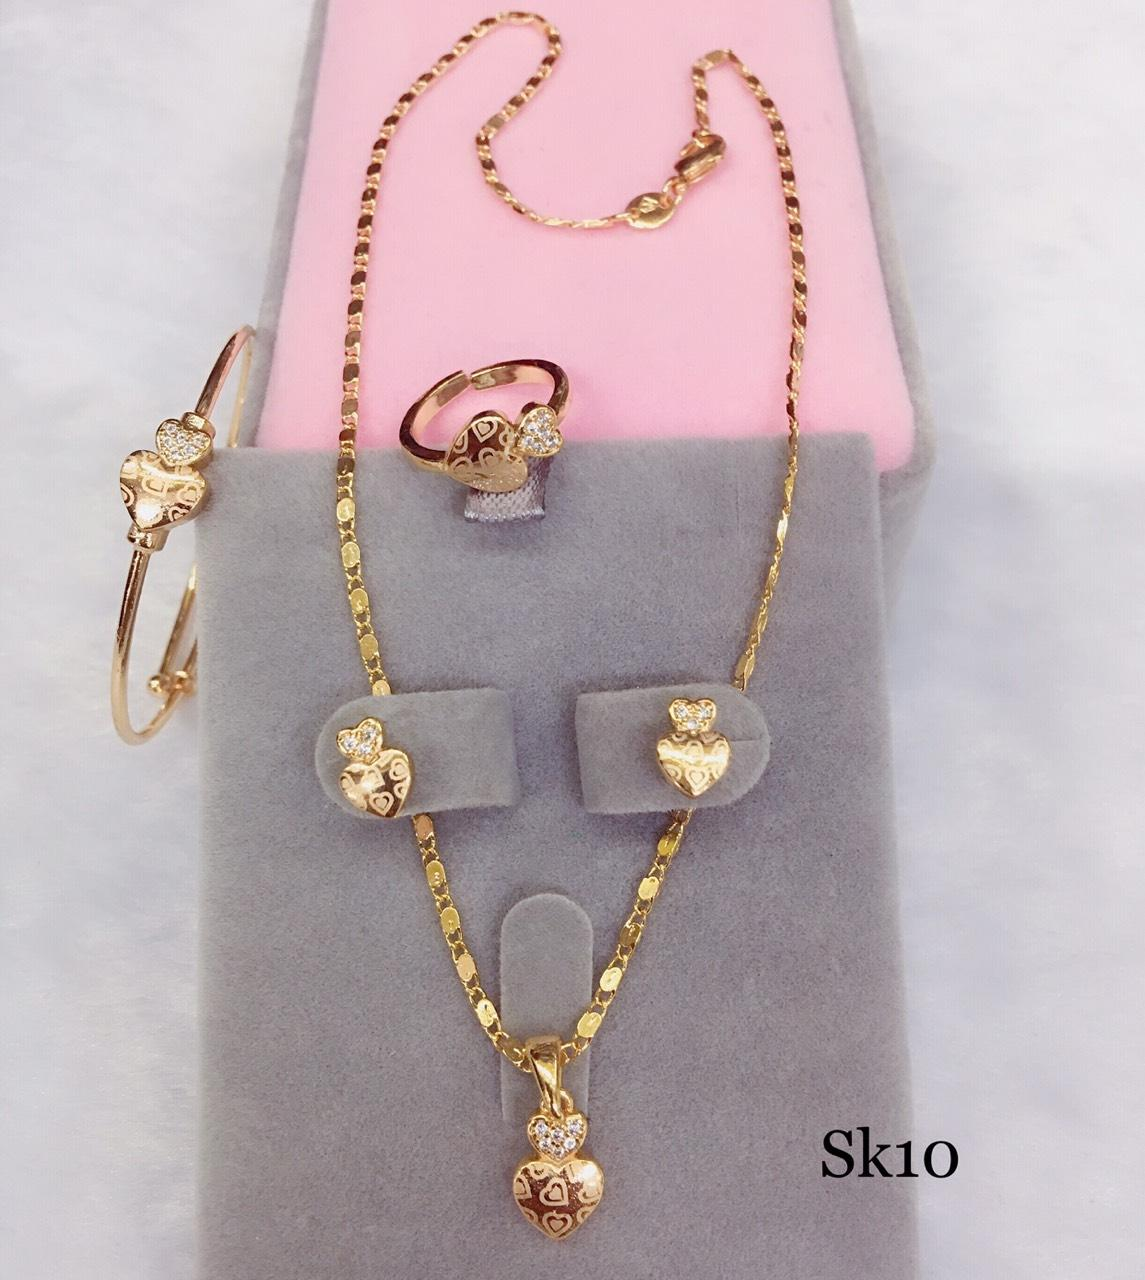 Sk10 High Quality 18k Rose Gold Stainless Steel 4 In 1 Set For Kids By Miss M Shop.